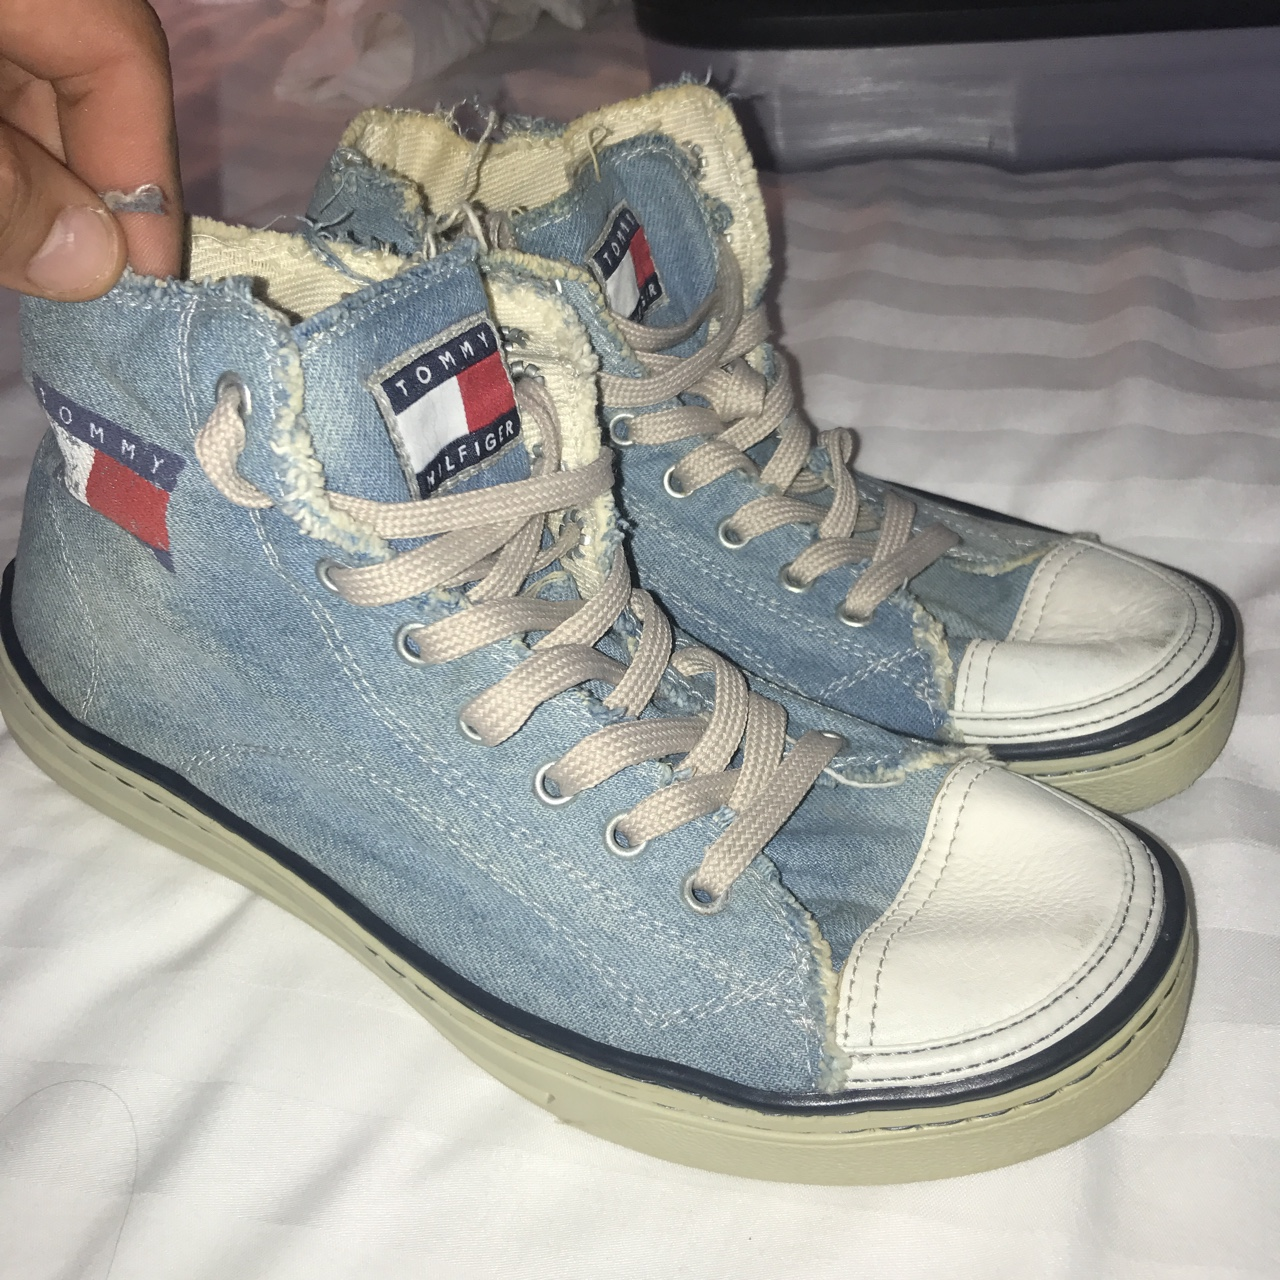 Tommy Hilfiger shoes trainers converse style Very Depop